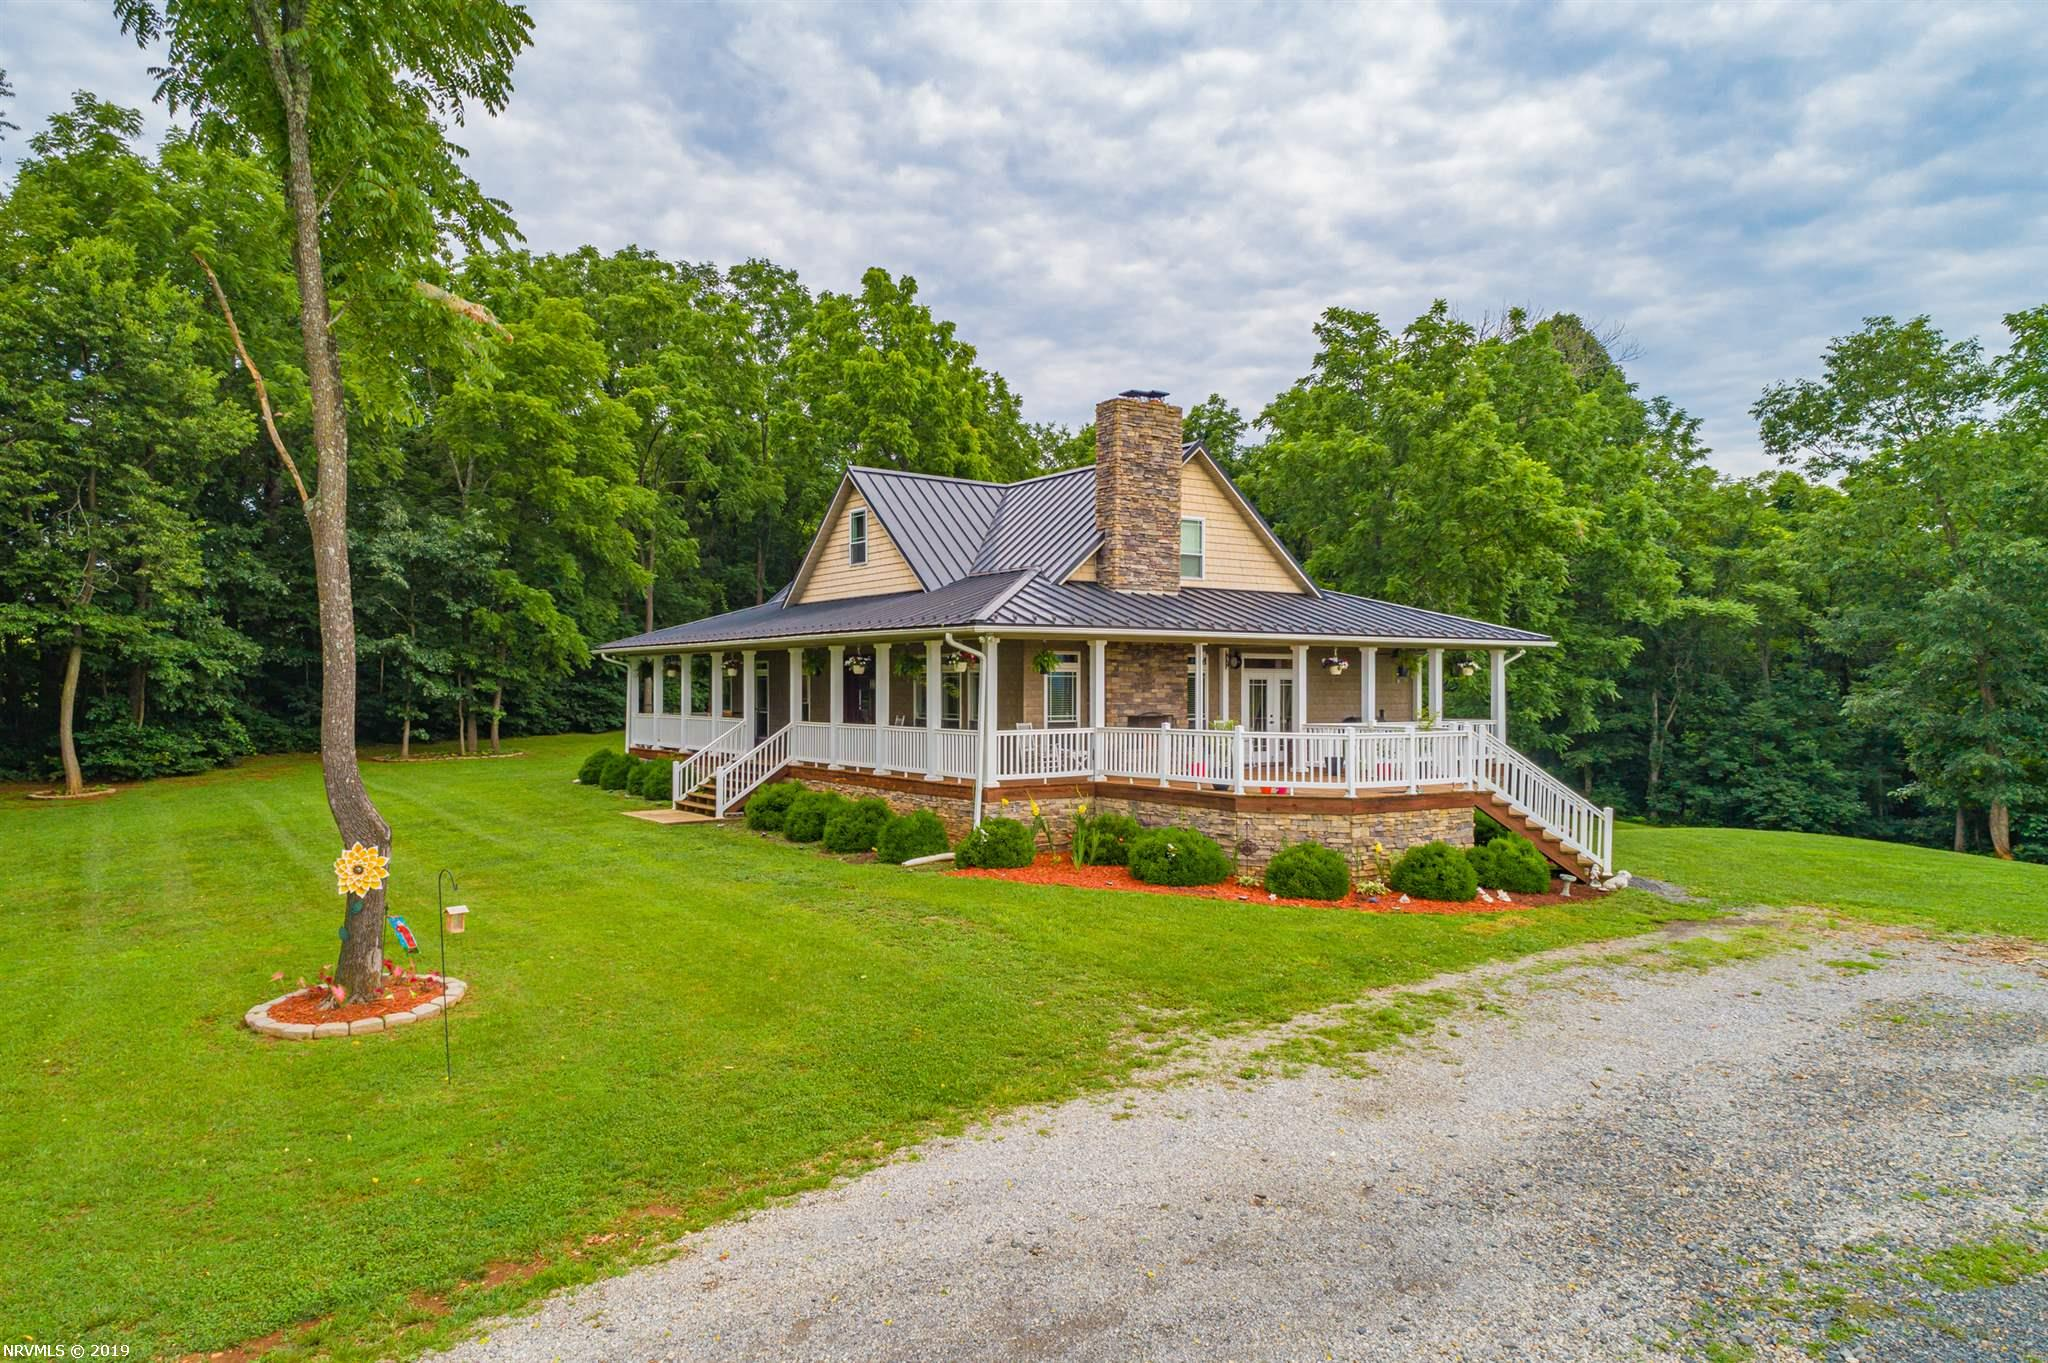 Have the ultimate place that brings you some of the best of what Southwest Virginia has to offer: Mountain and River Views plus New River and New River Trail access! This 38+ acre property boasts long range mountain and river views, 3000 feet of frontage on the New River and access to New Trail. Relax on the wrap around deck with an outdoor fireplace. The craftsman home has an open concept living area which features cathedral ceilings, a top of the line Kitchen including maple cabinets with up lighting, granite counter tops, stainless appliances, stainless farm house sink and prep sink in the island. Two bedrooms on the main level with a third bedroom being a loft open to below with a full bath. Brazilian cherry hardwoods throughout, 10ft ceilings, mission grid windows with transom windows above all windows and door. Ceramic tile floors in the laundry and bath rooms. Three full baths with Jacuzzi tub in the master bath. Full walkout basement and wrap around porch.